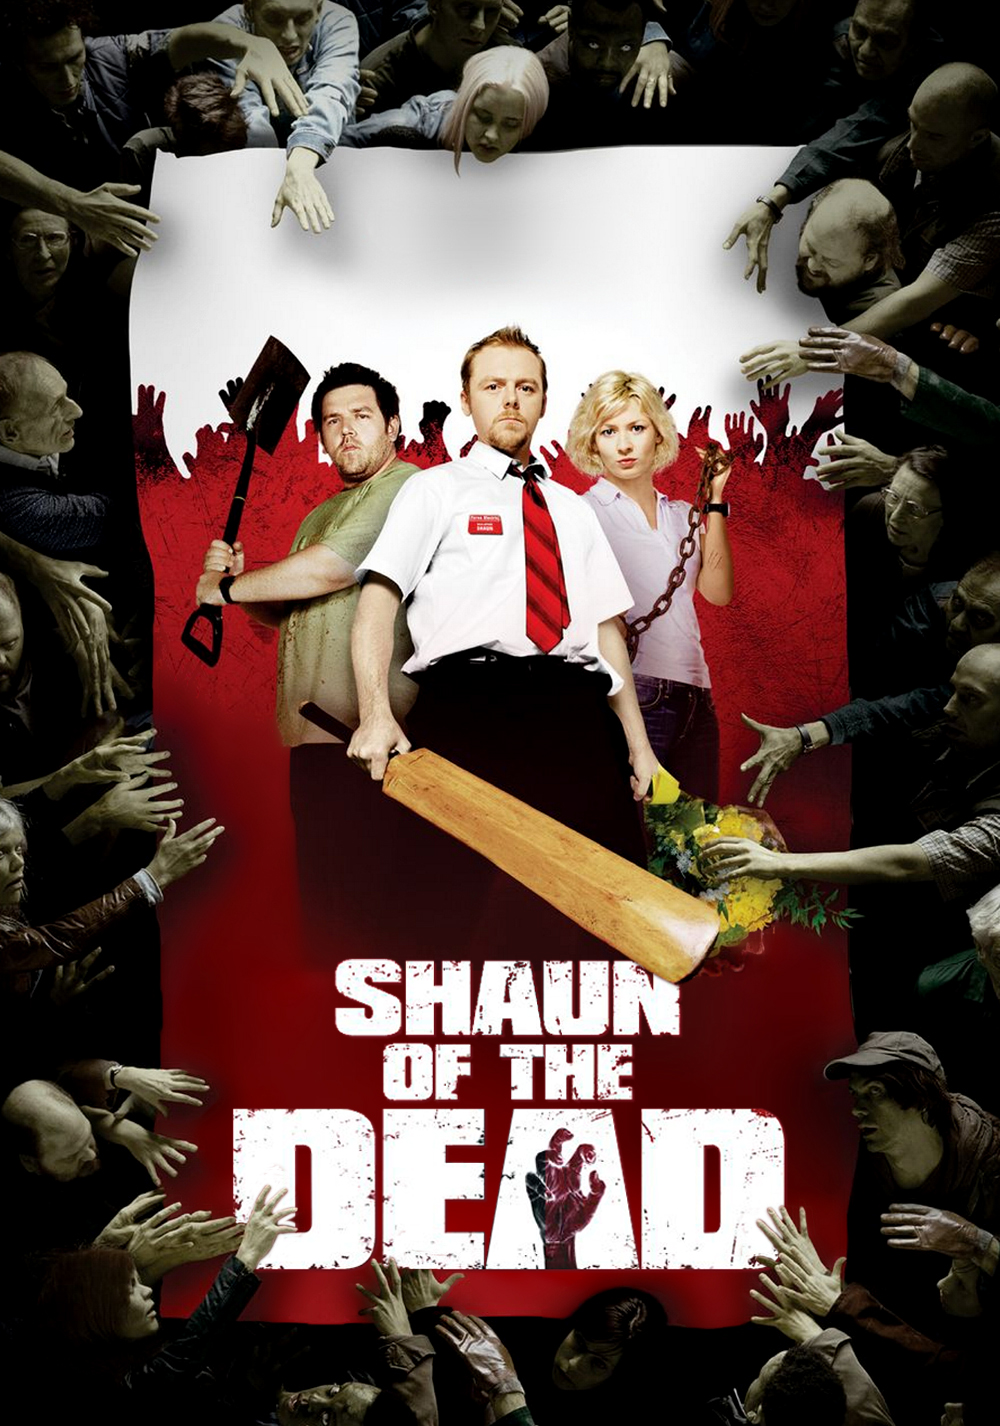 shaun of the dead autosaved Shaun of the dead published by universal studios home entertainment shaun of the dead characters appearing in phineas and ferb.